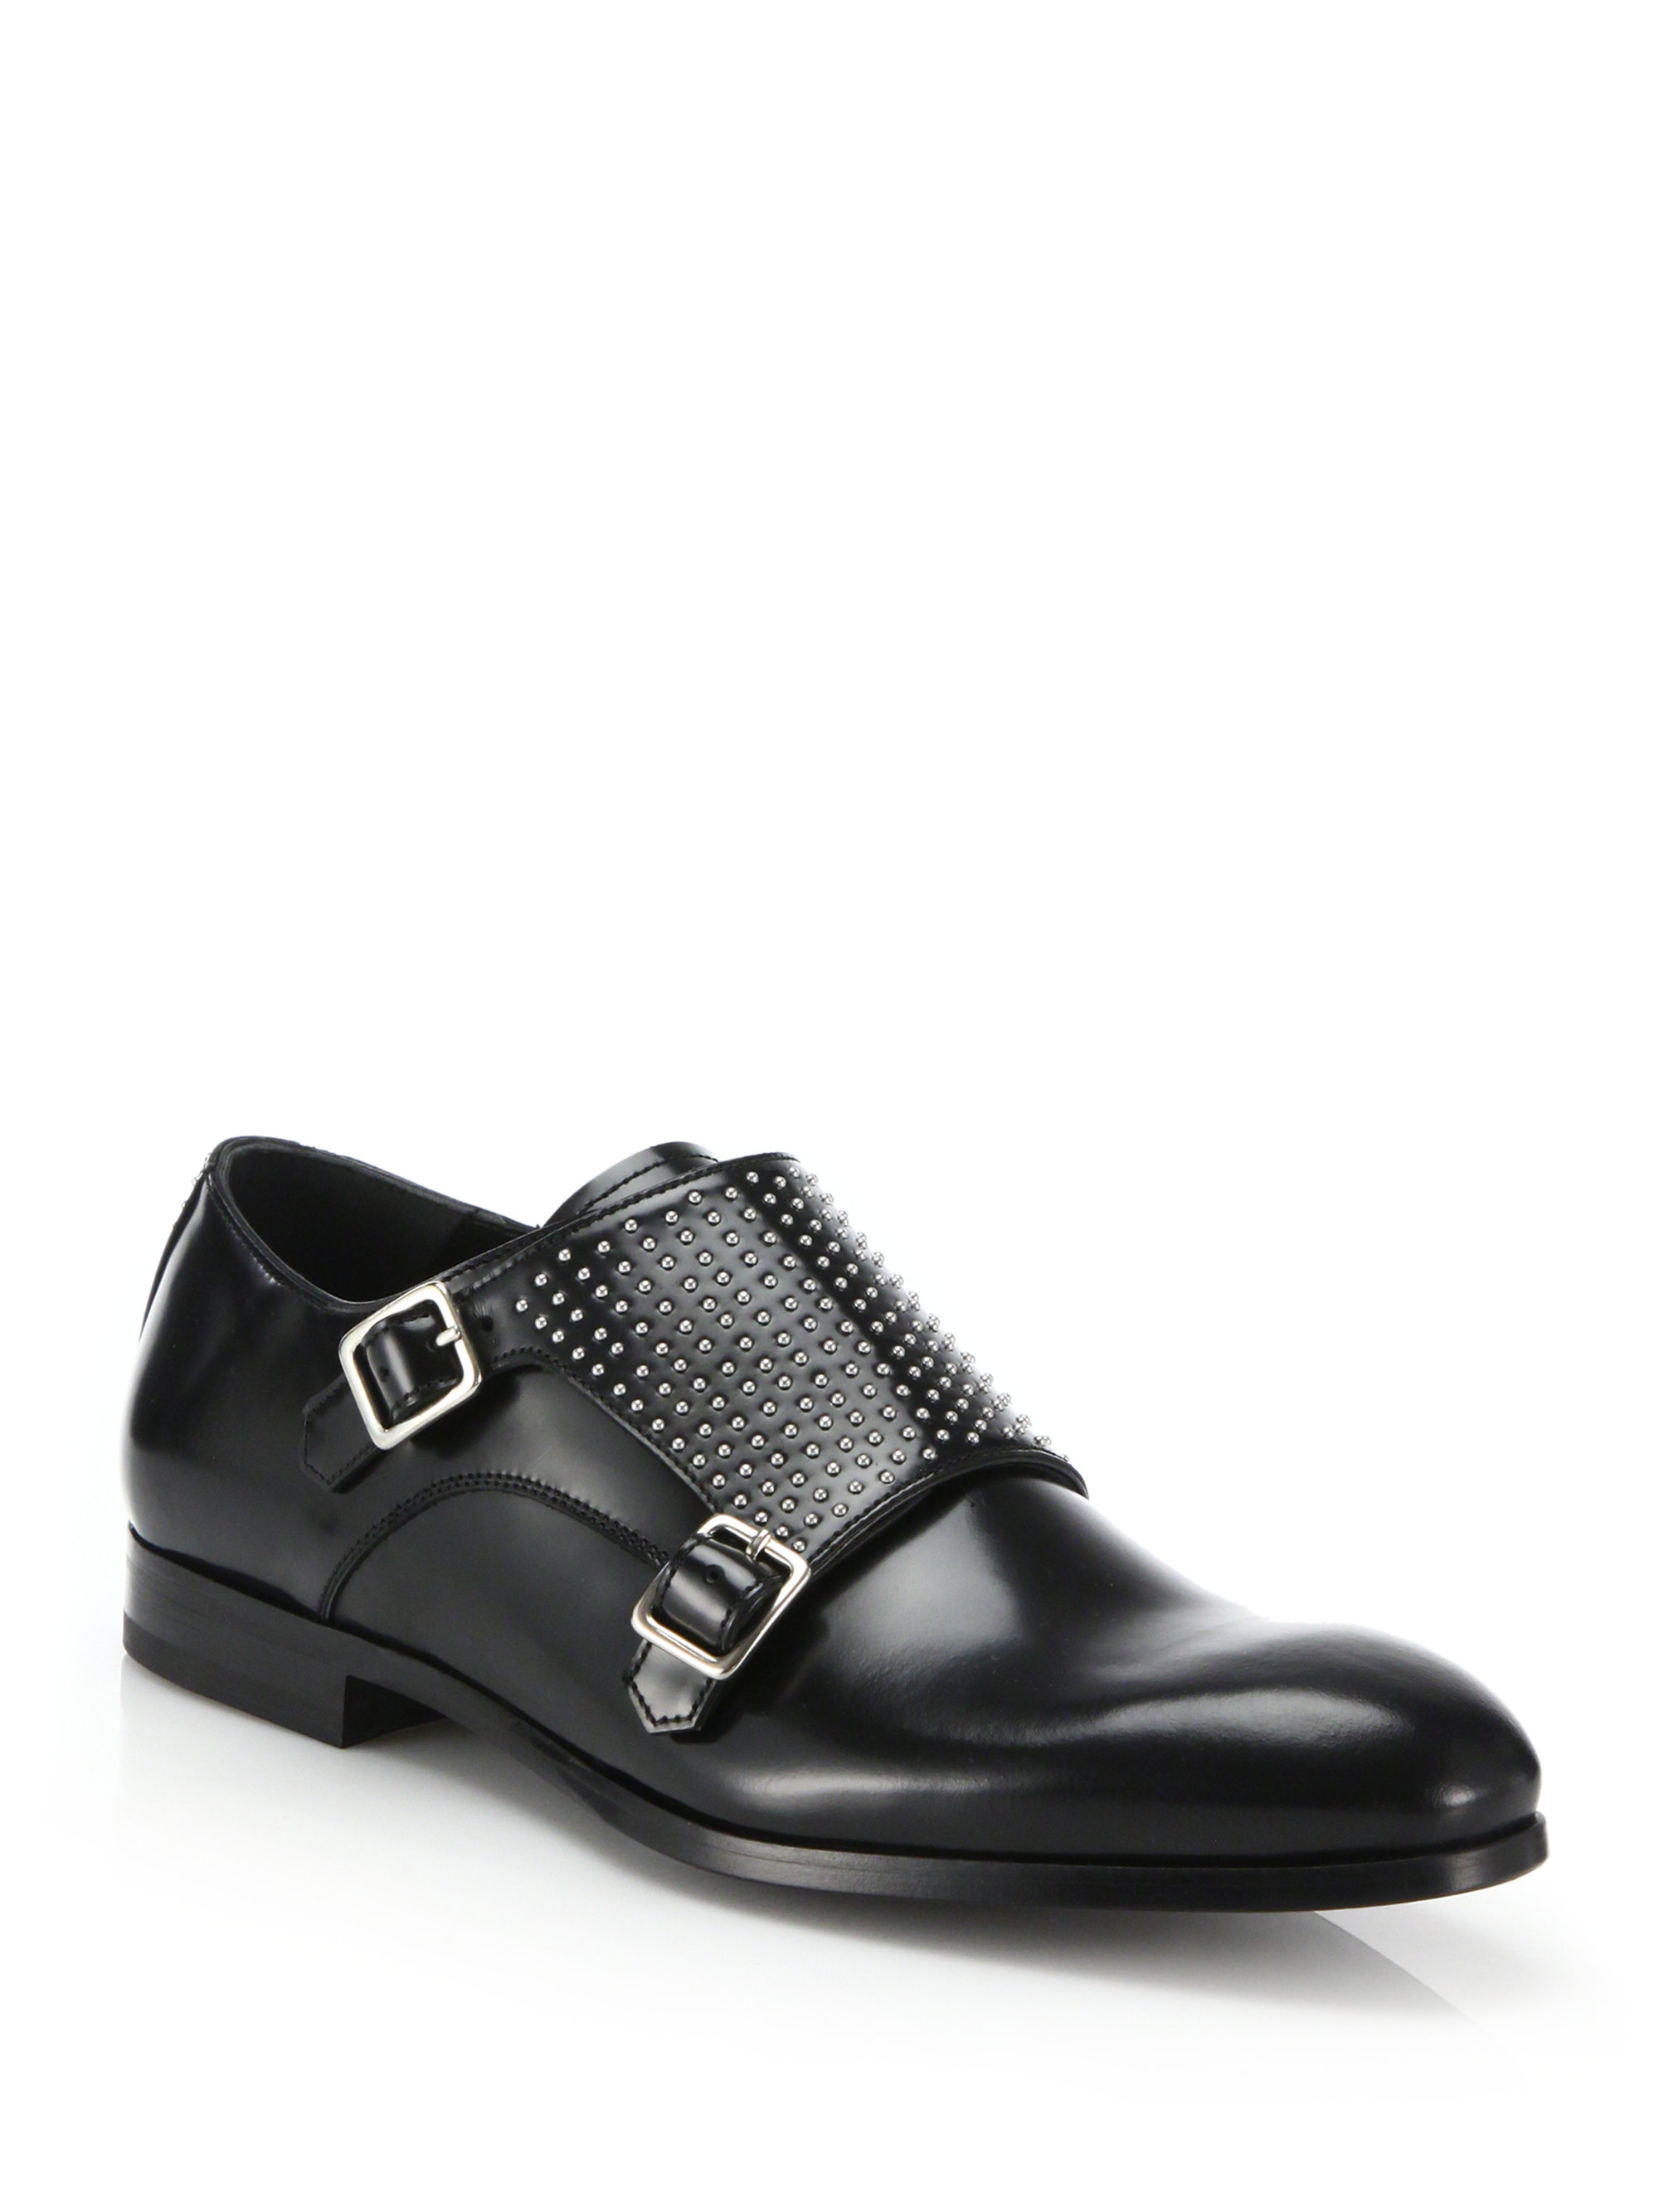 433bdd5ee0f70 Lyst - Alexander McQueen Studded Double Monk-strap Brogues in Black ...